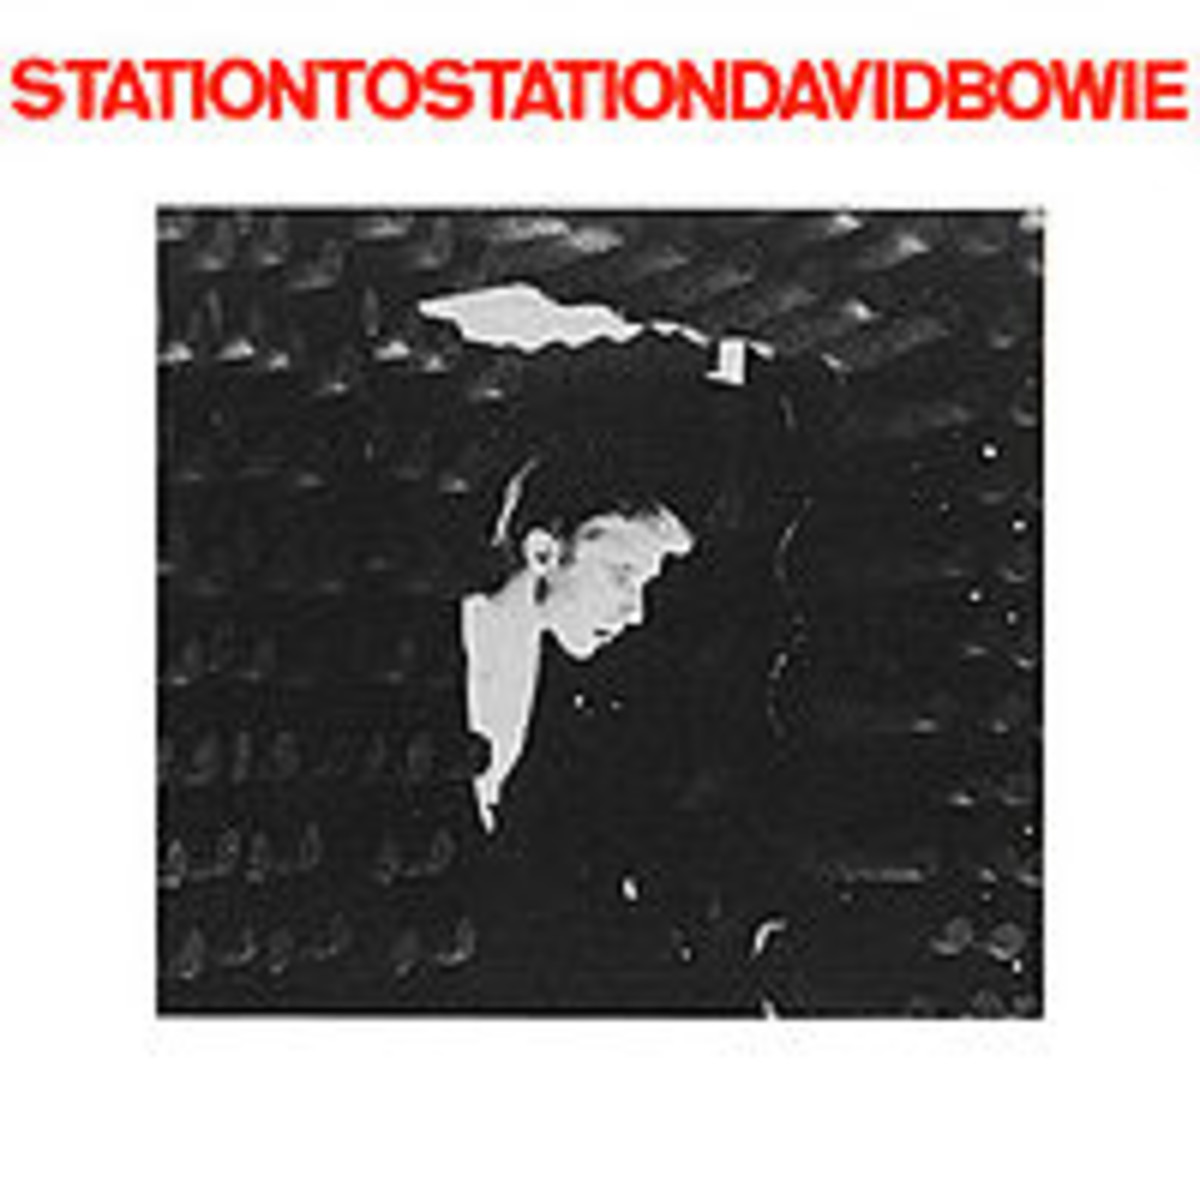 station-bowie